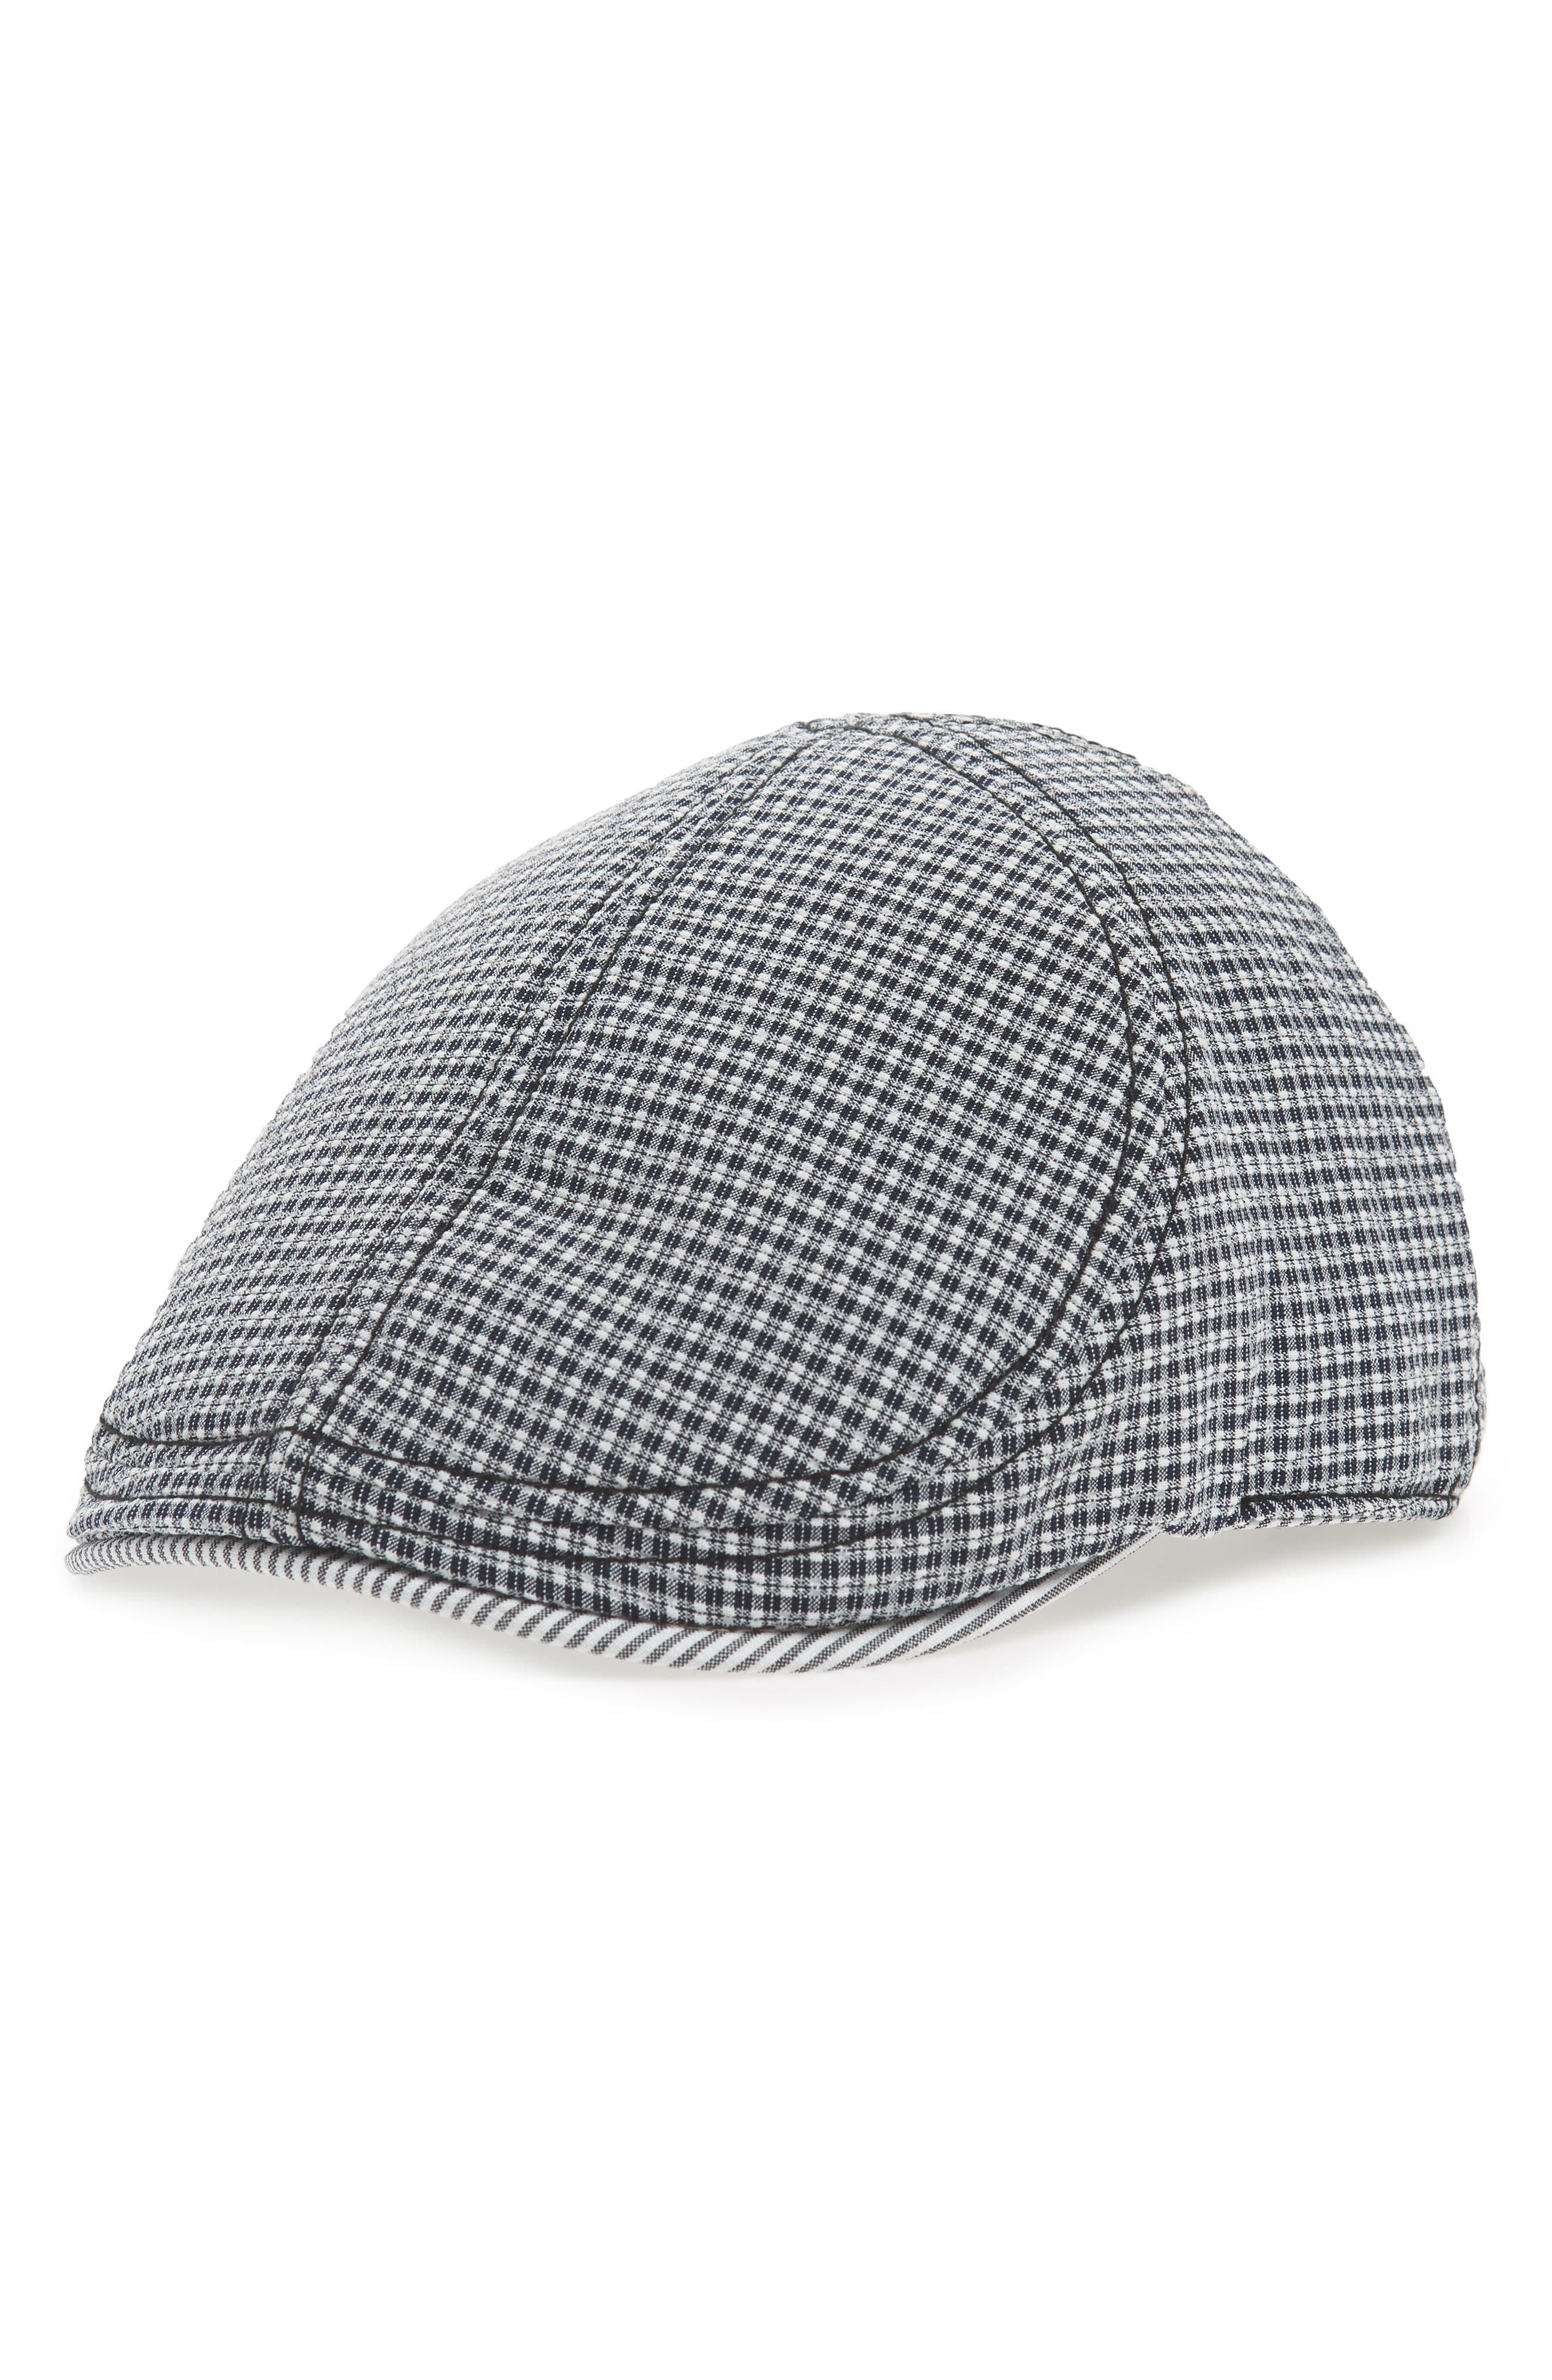 Fridays Driving Cap,                             Main thumbnail 1, color,                             Gray